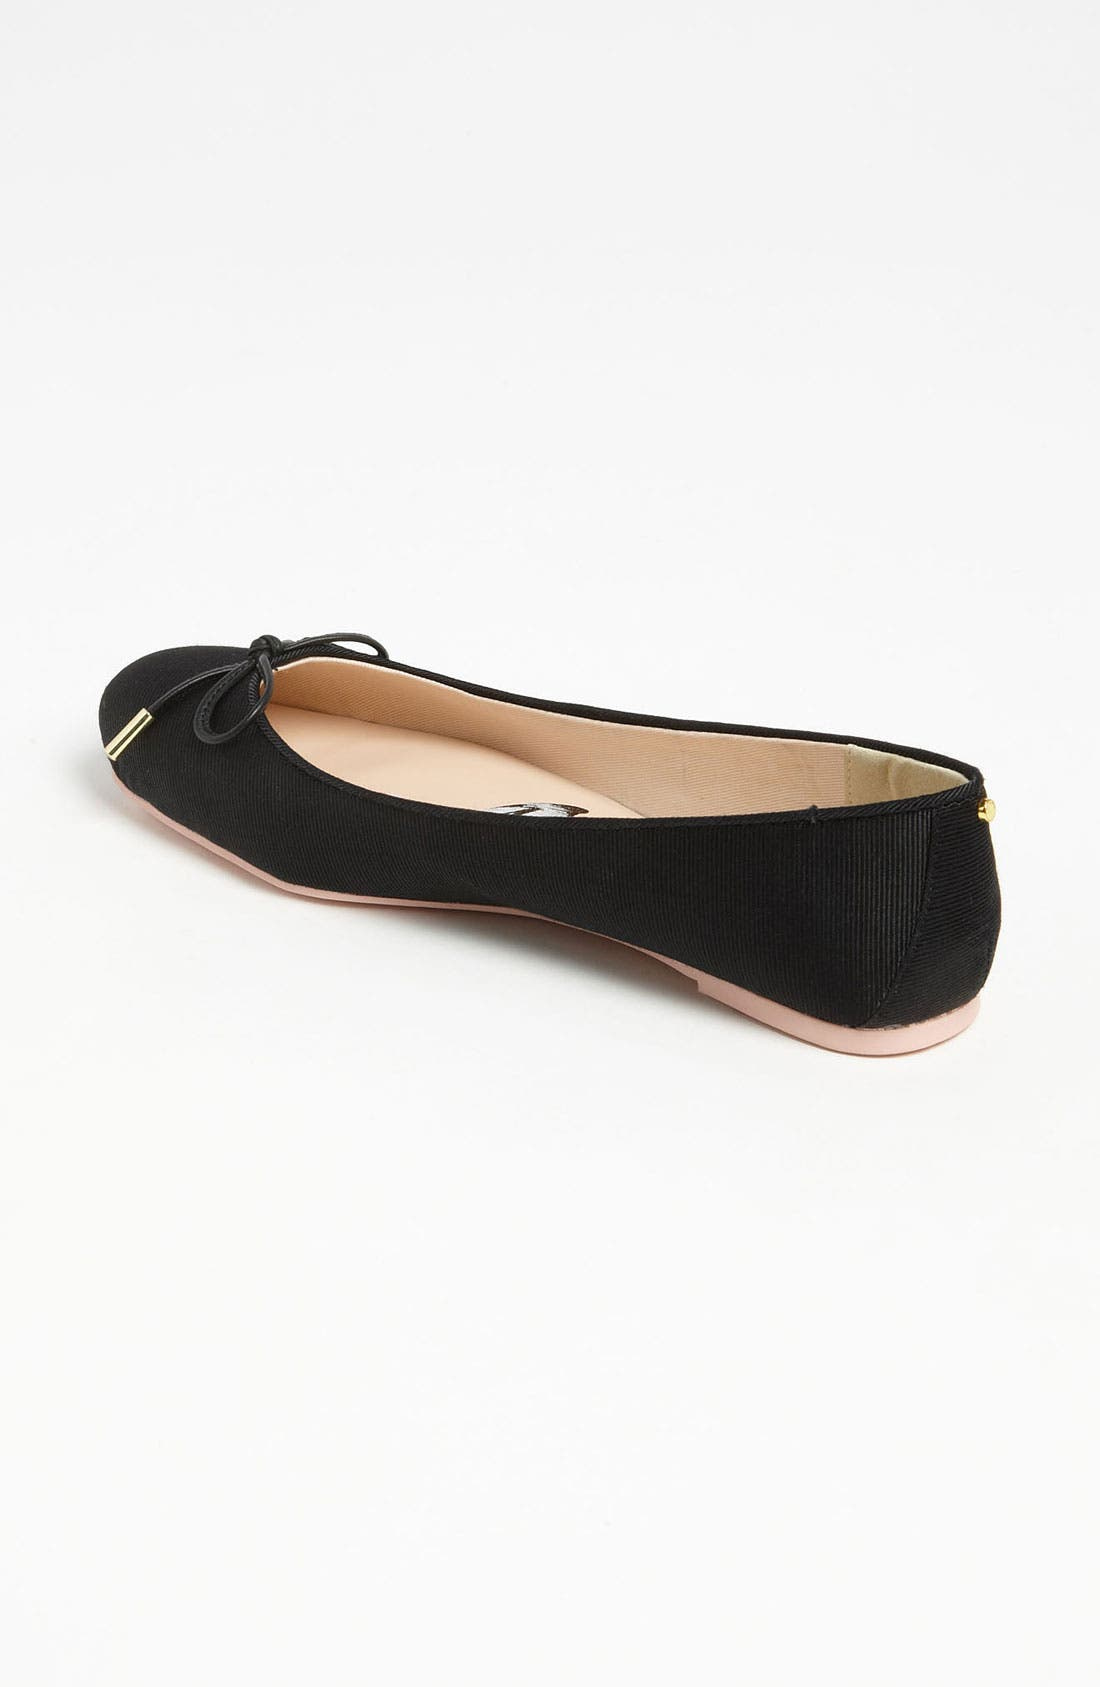 'Charee' Ballet Flat,                             Alternate thumbnail 4, color,                             011